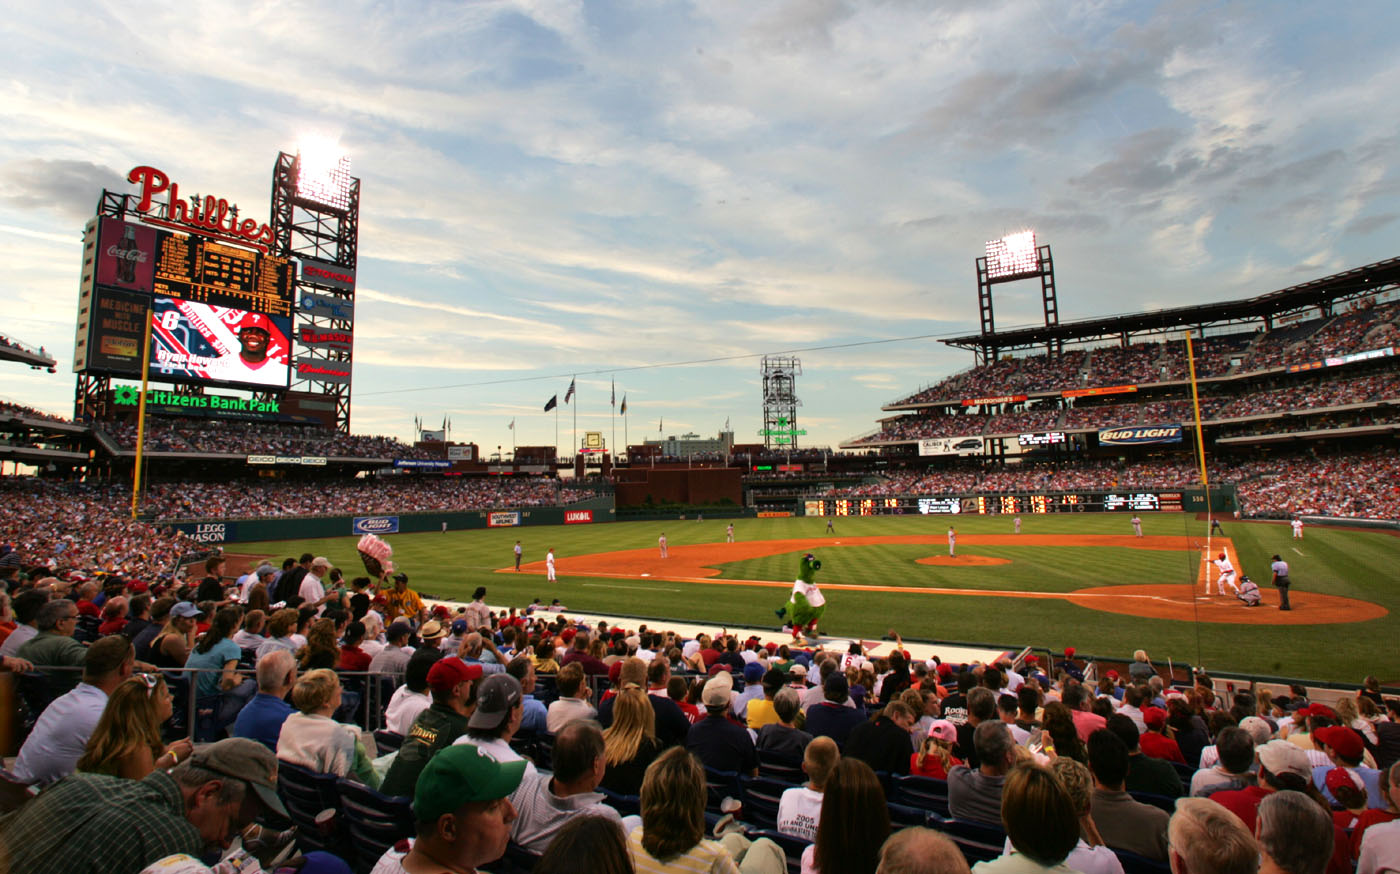 CitizensBankPark-Phillies-12-MKennedy.jpg